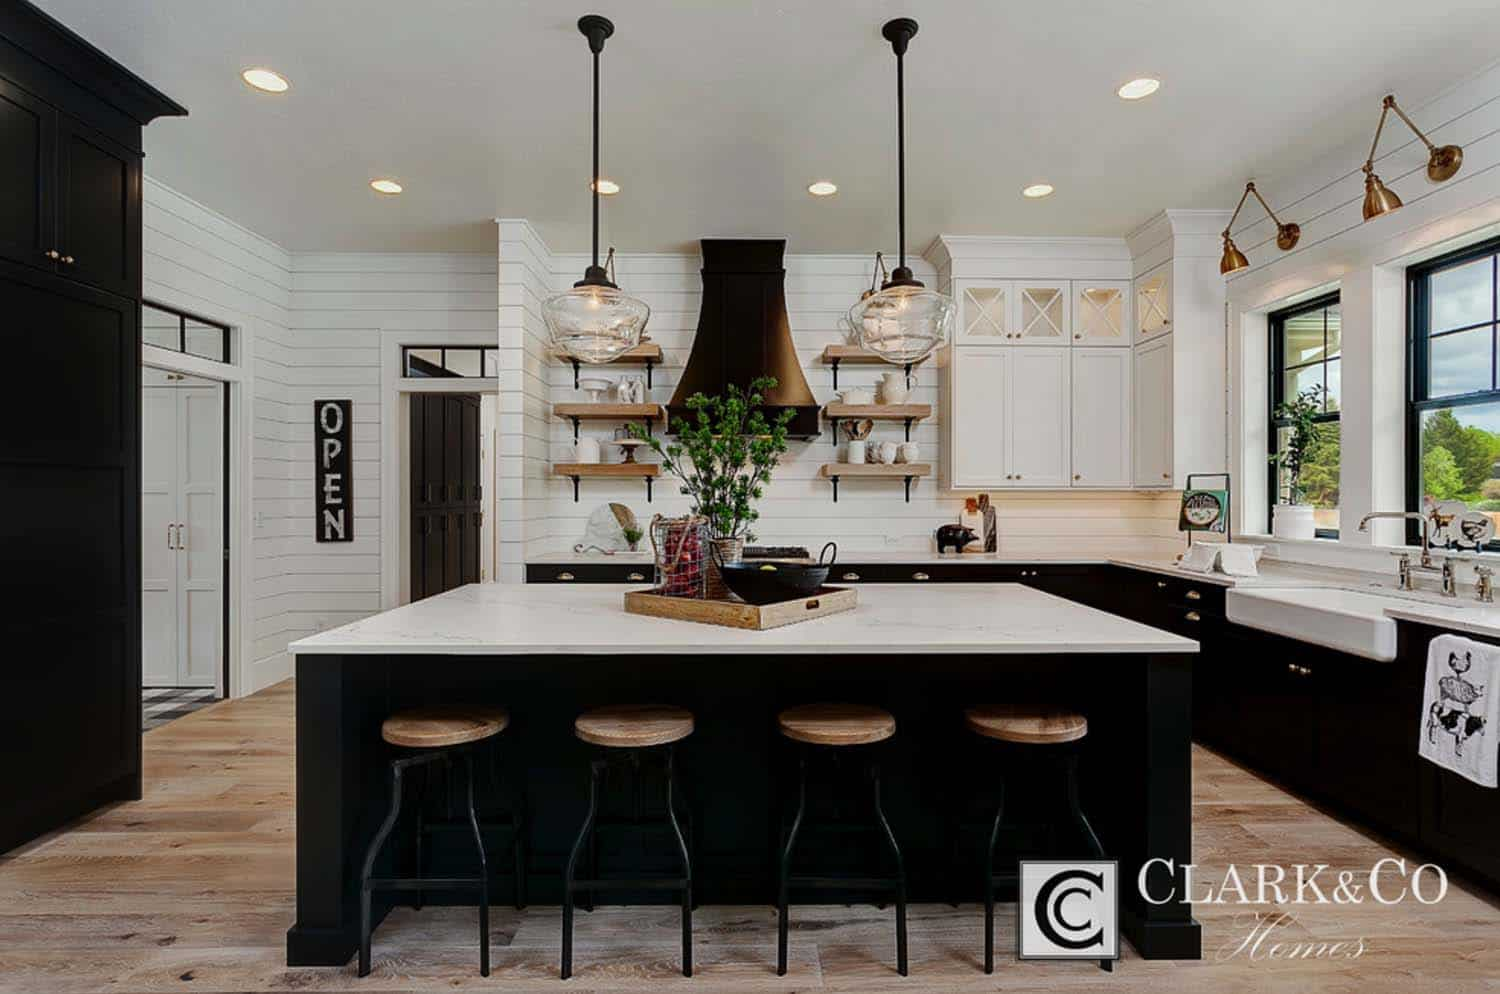 Modern Farmhouse Style-Clark and Co Homes-34-1 Kindesign